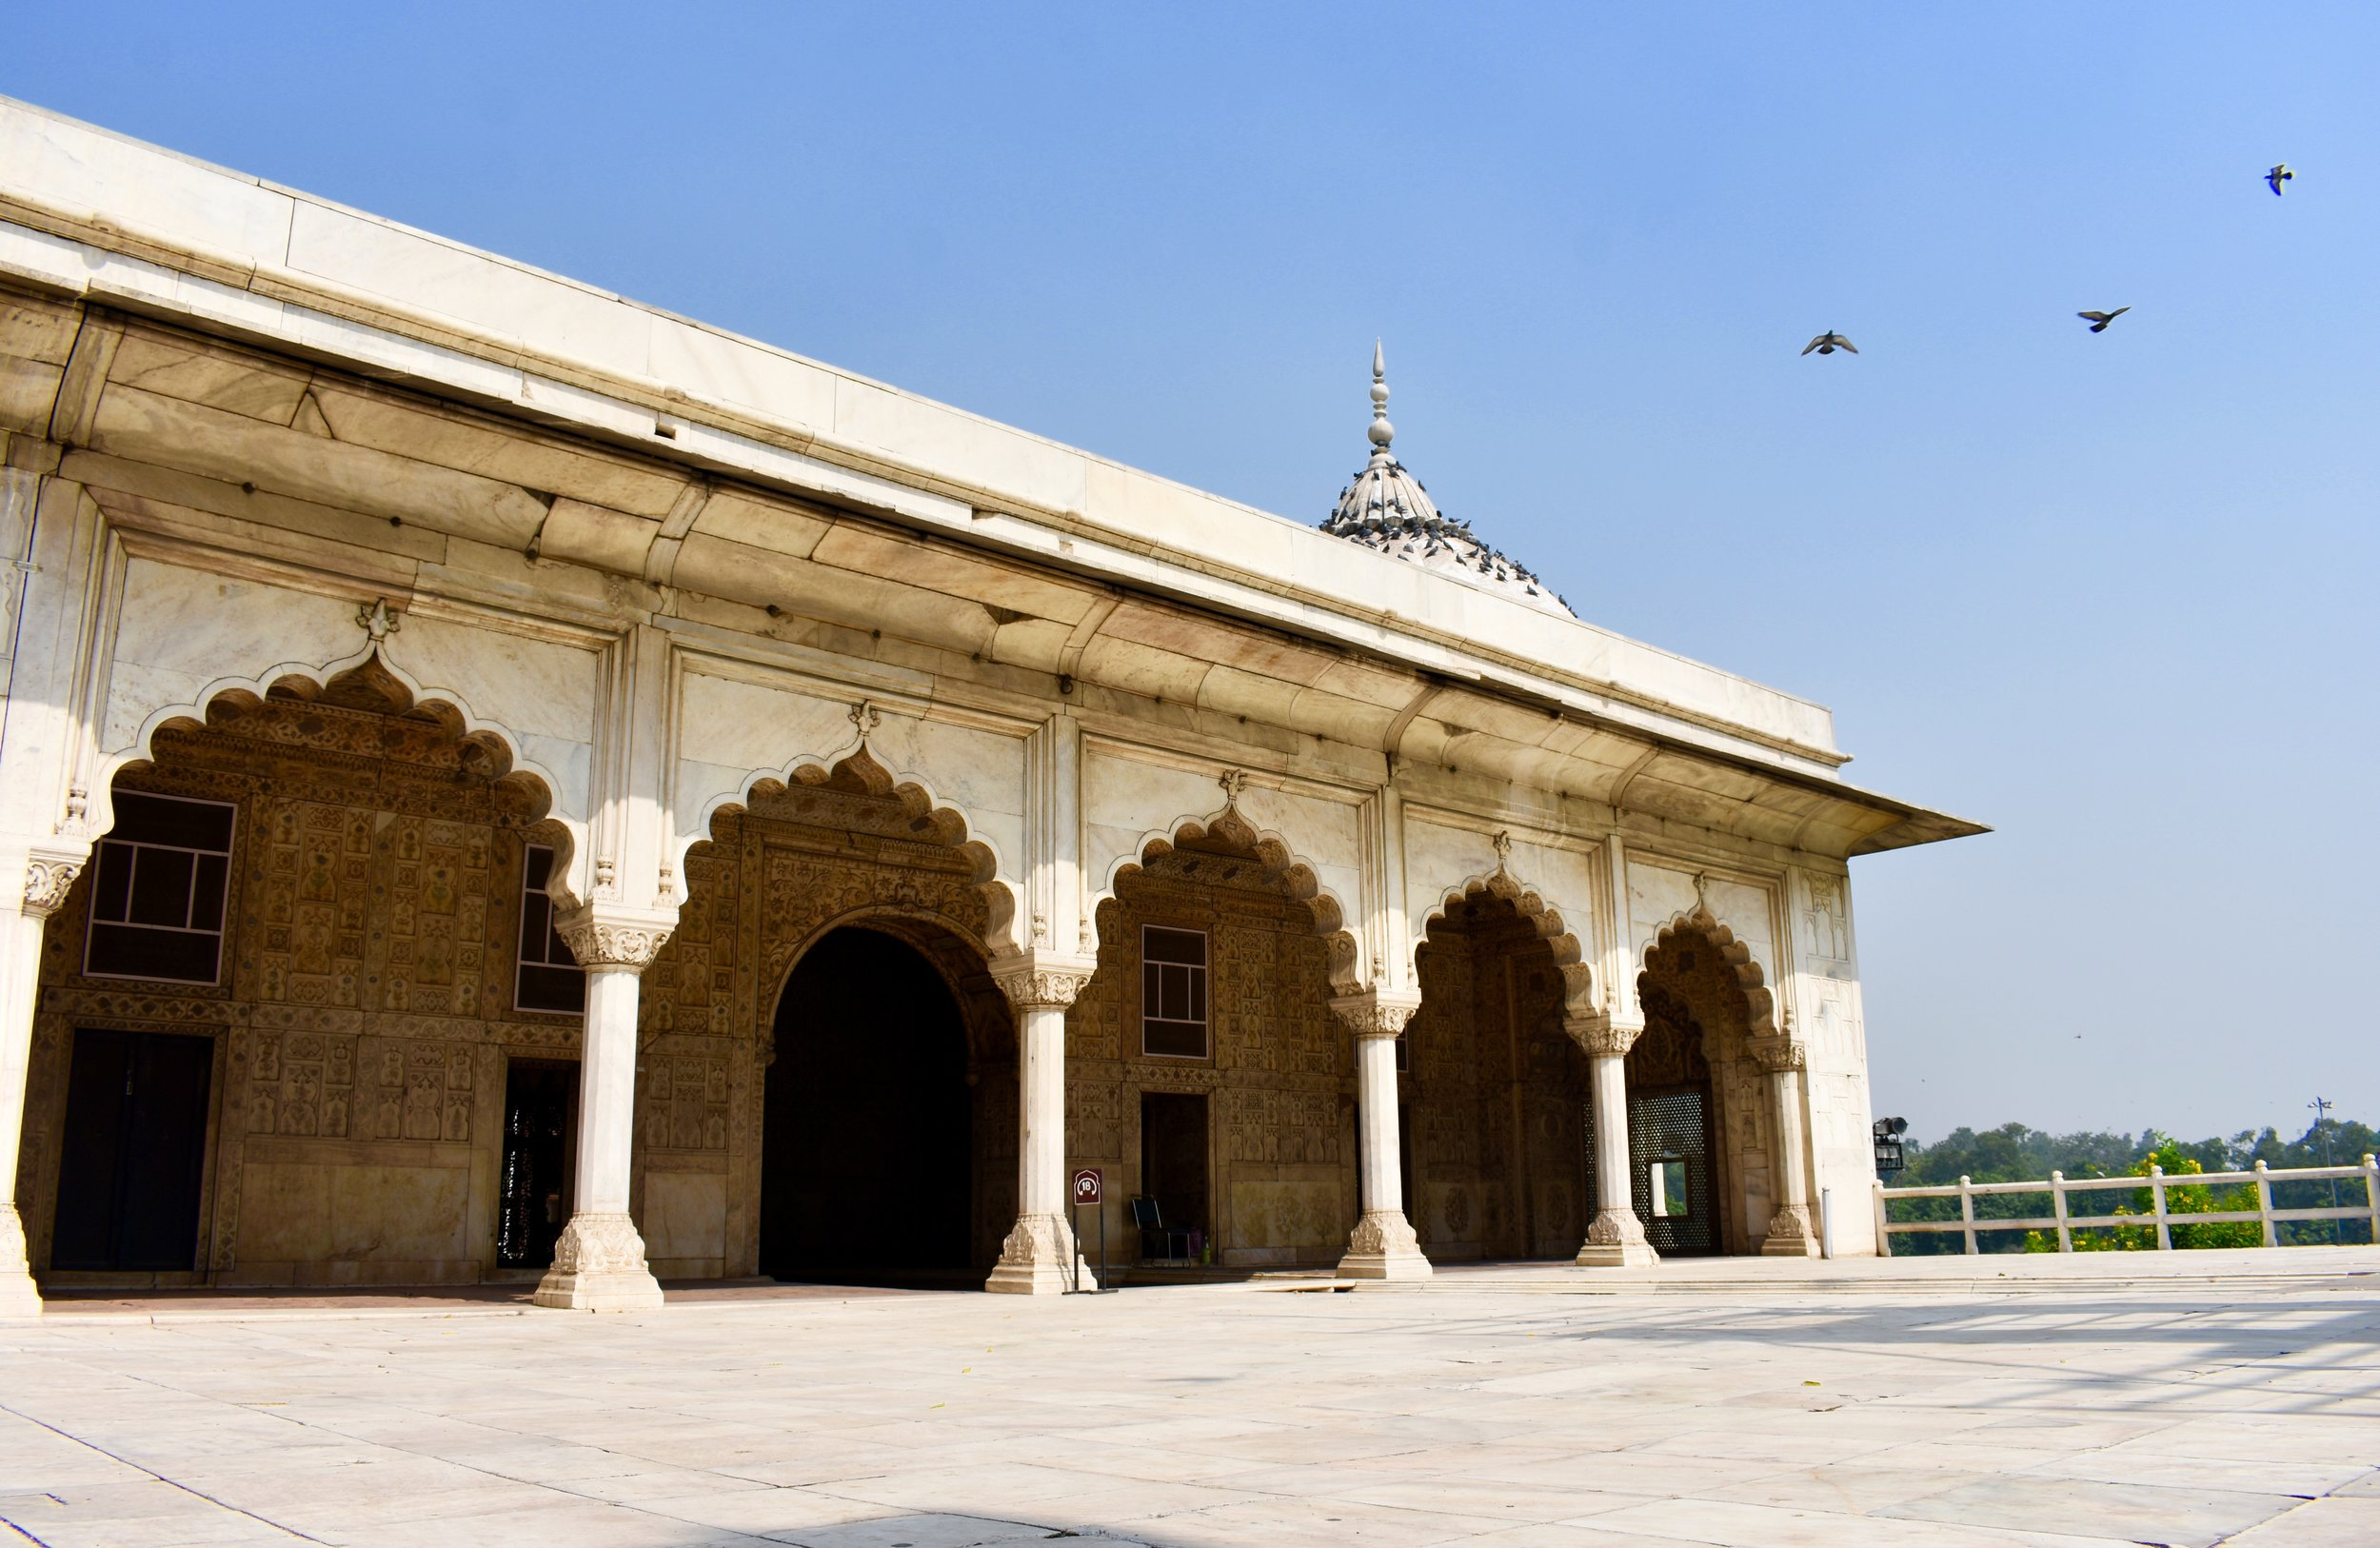 A Day in Delhi - Khas Mahal, Red Fort